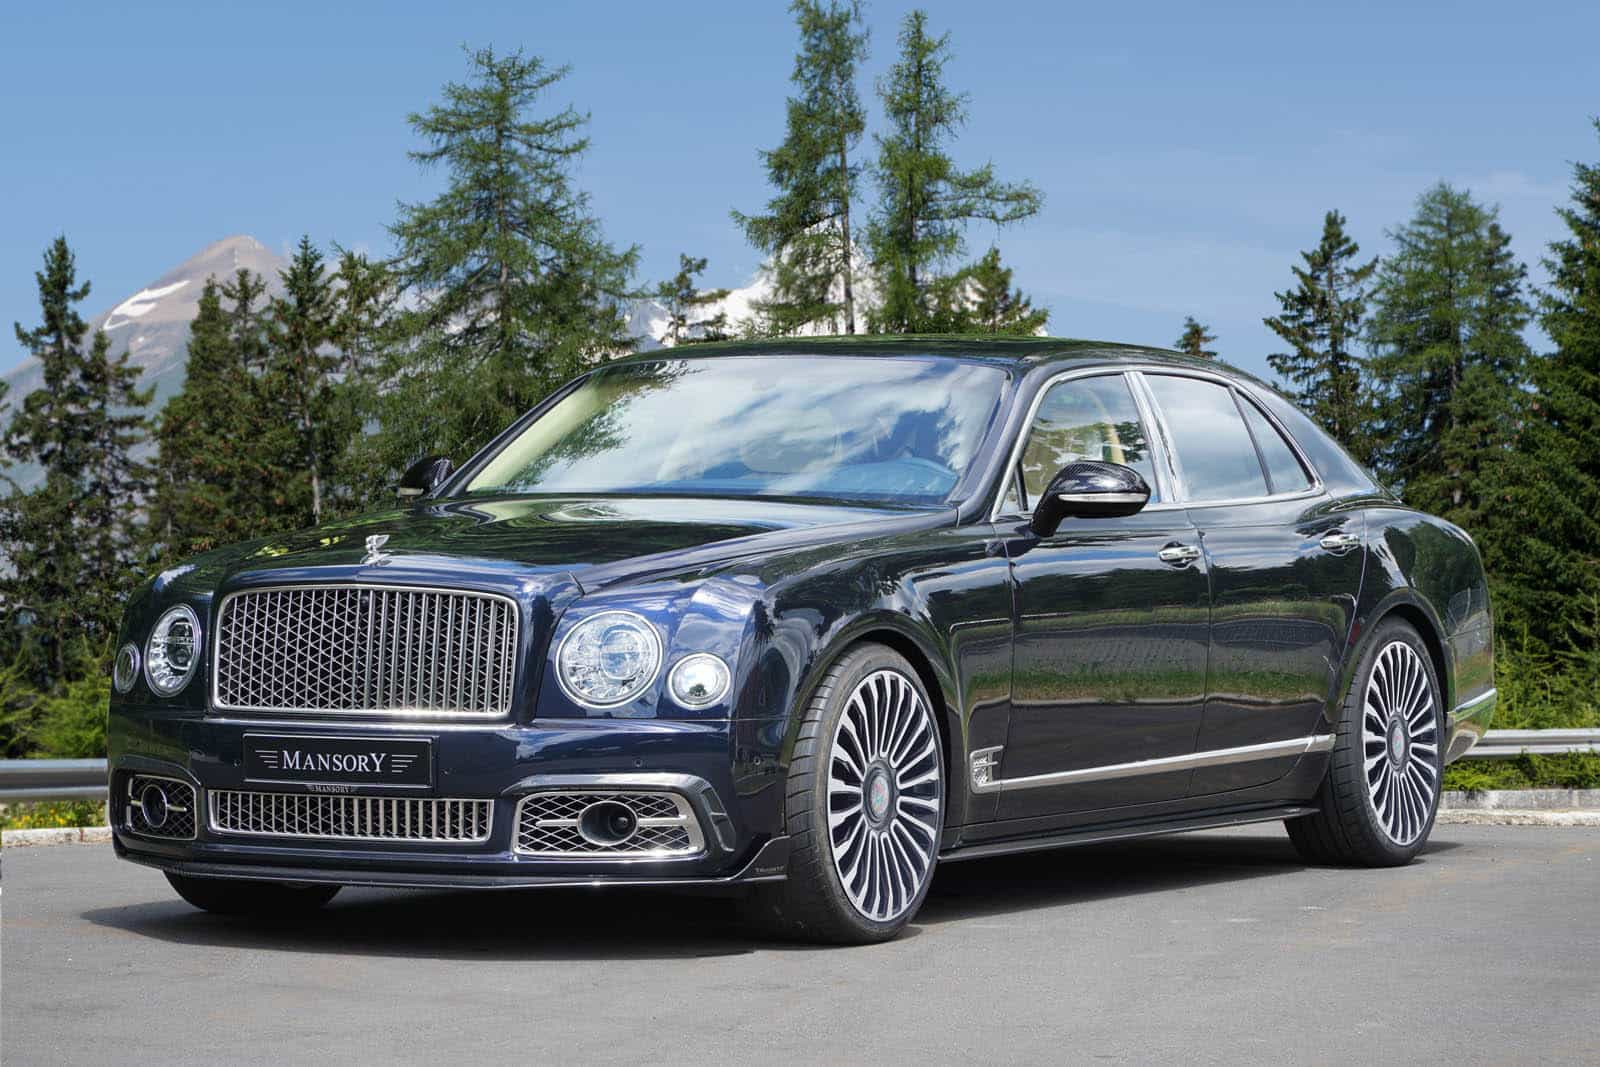 Mansory Fiddles With The Luxurious Bentley Mulsanne